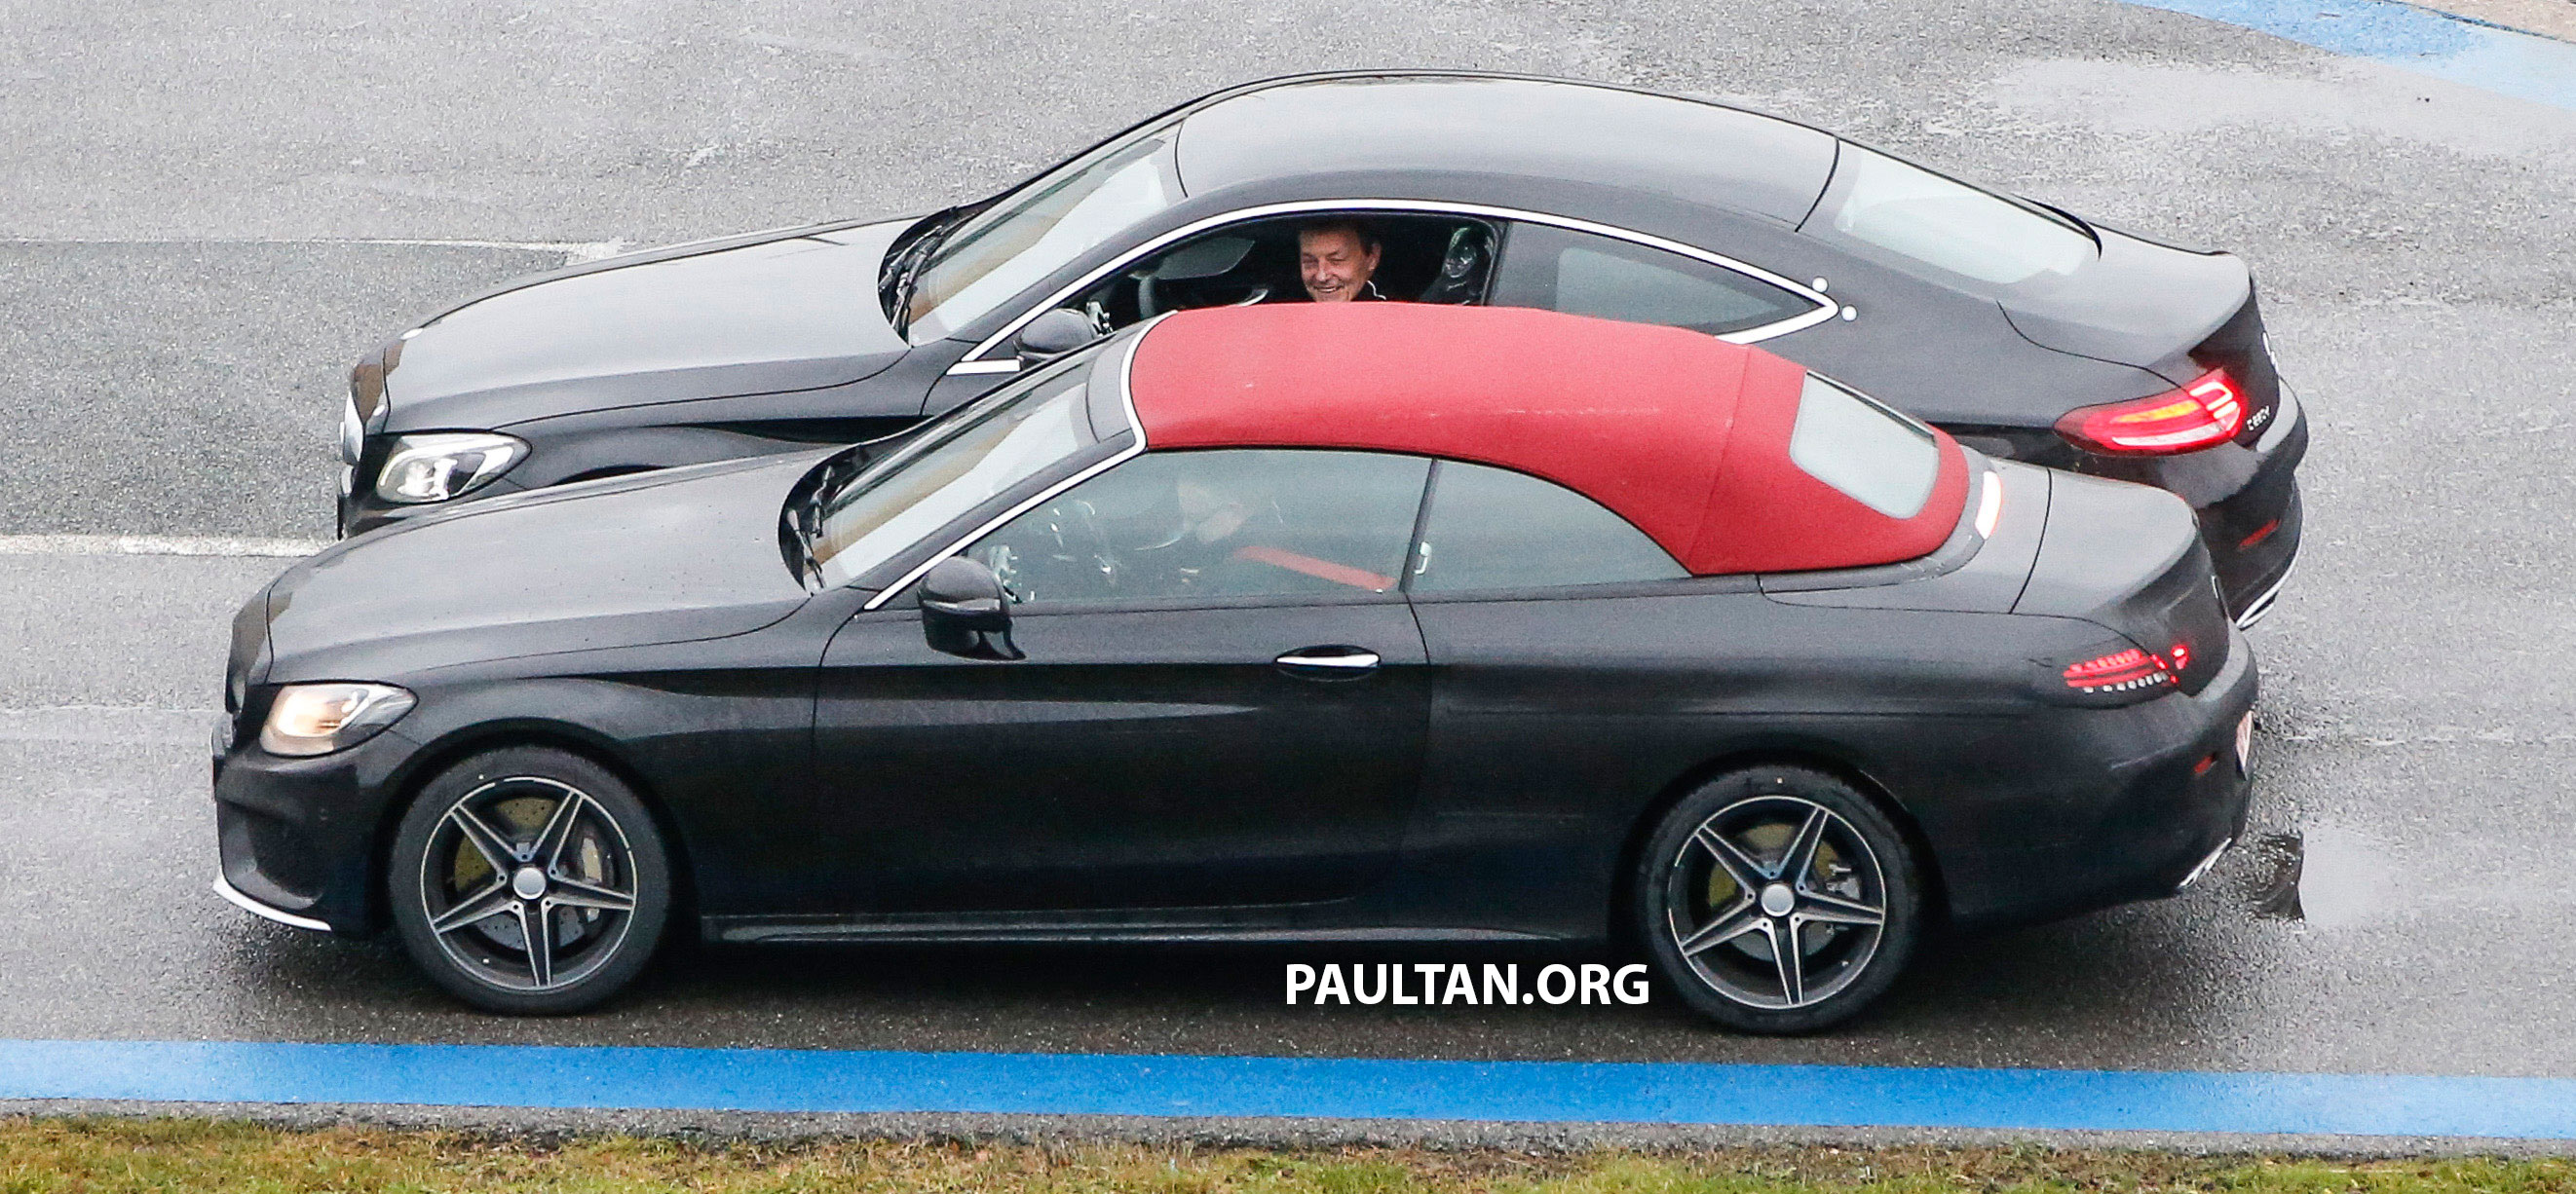 Mercedes Benz >> SPIED: Mercedes-Benz C-Class Cabriolet undisguised Paul Tan - Image 420219